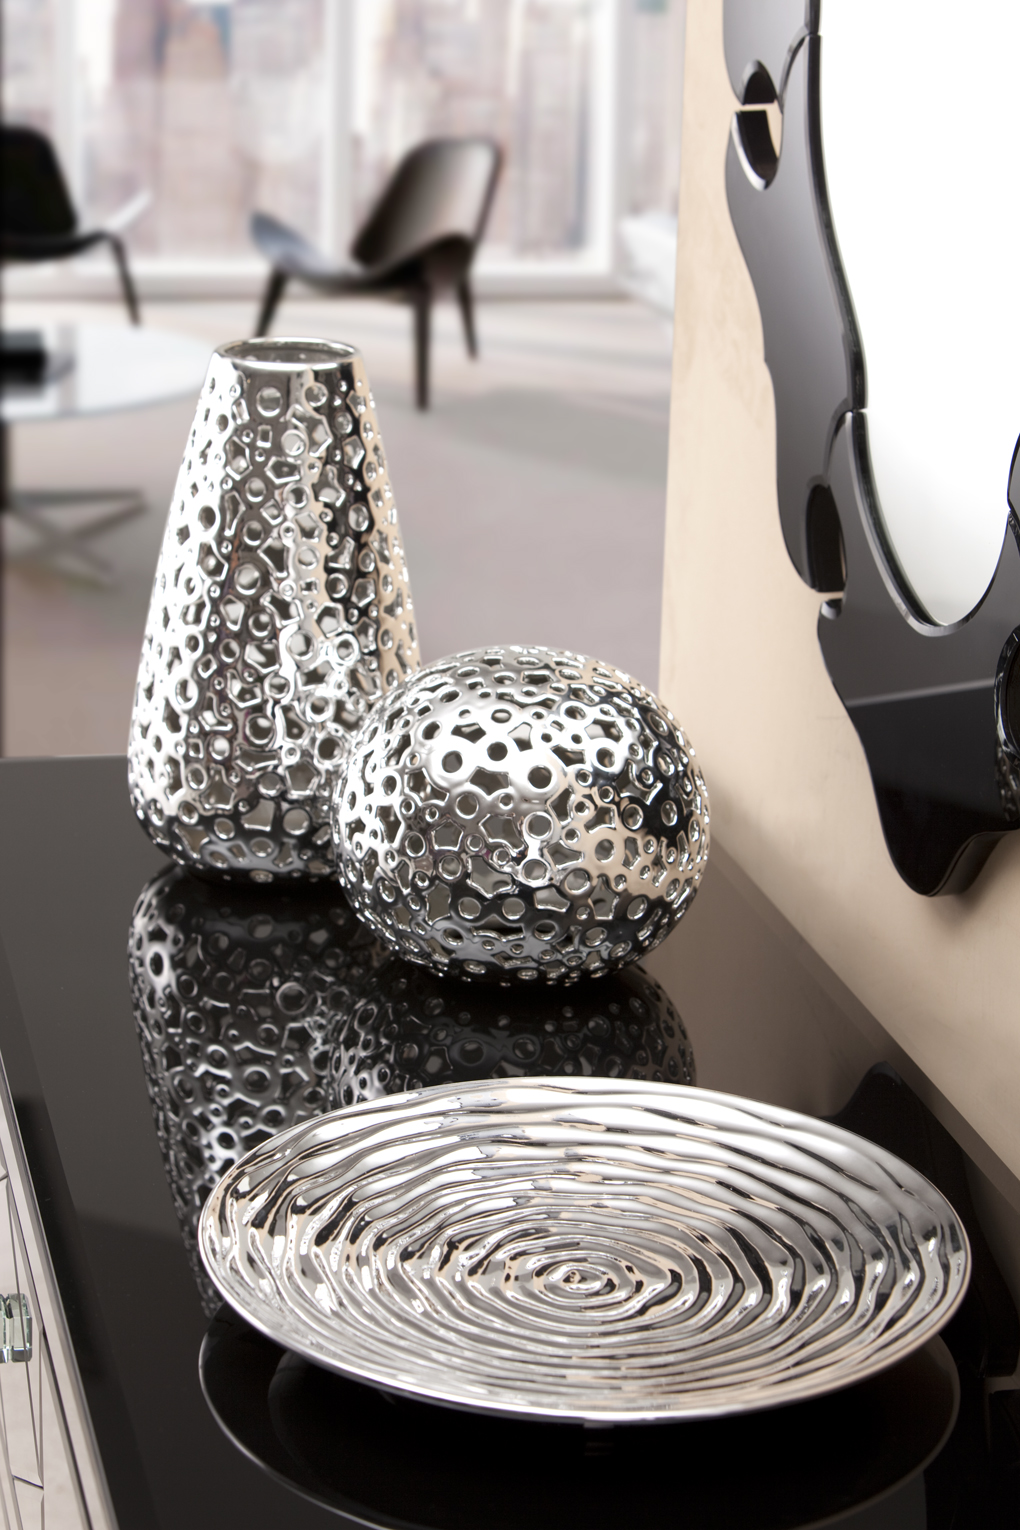 Design inspiration decorative accent pieces real life for Modern home accessories